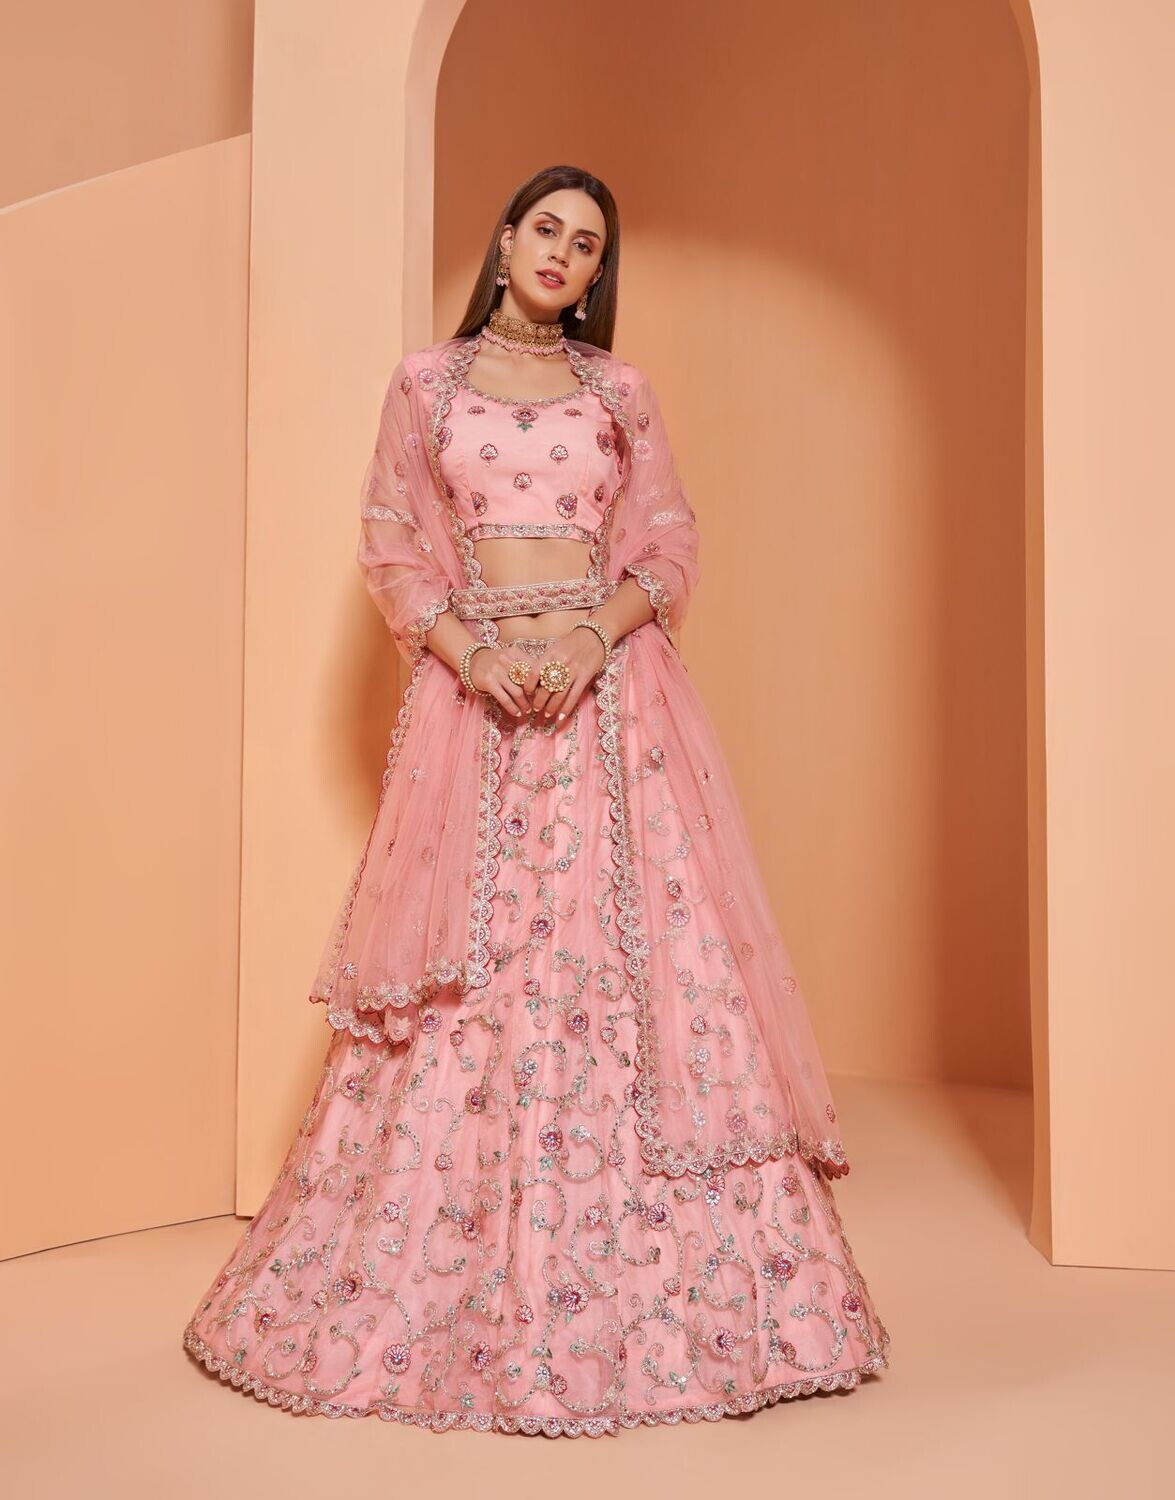 Engagement Wear Lehenga Choli With Cording Sequence Embroidery In Pink